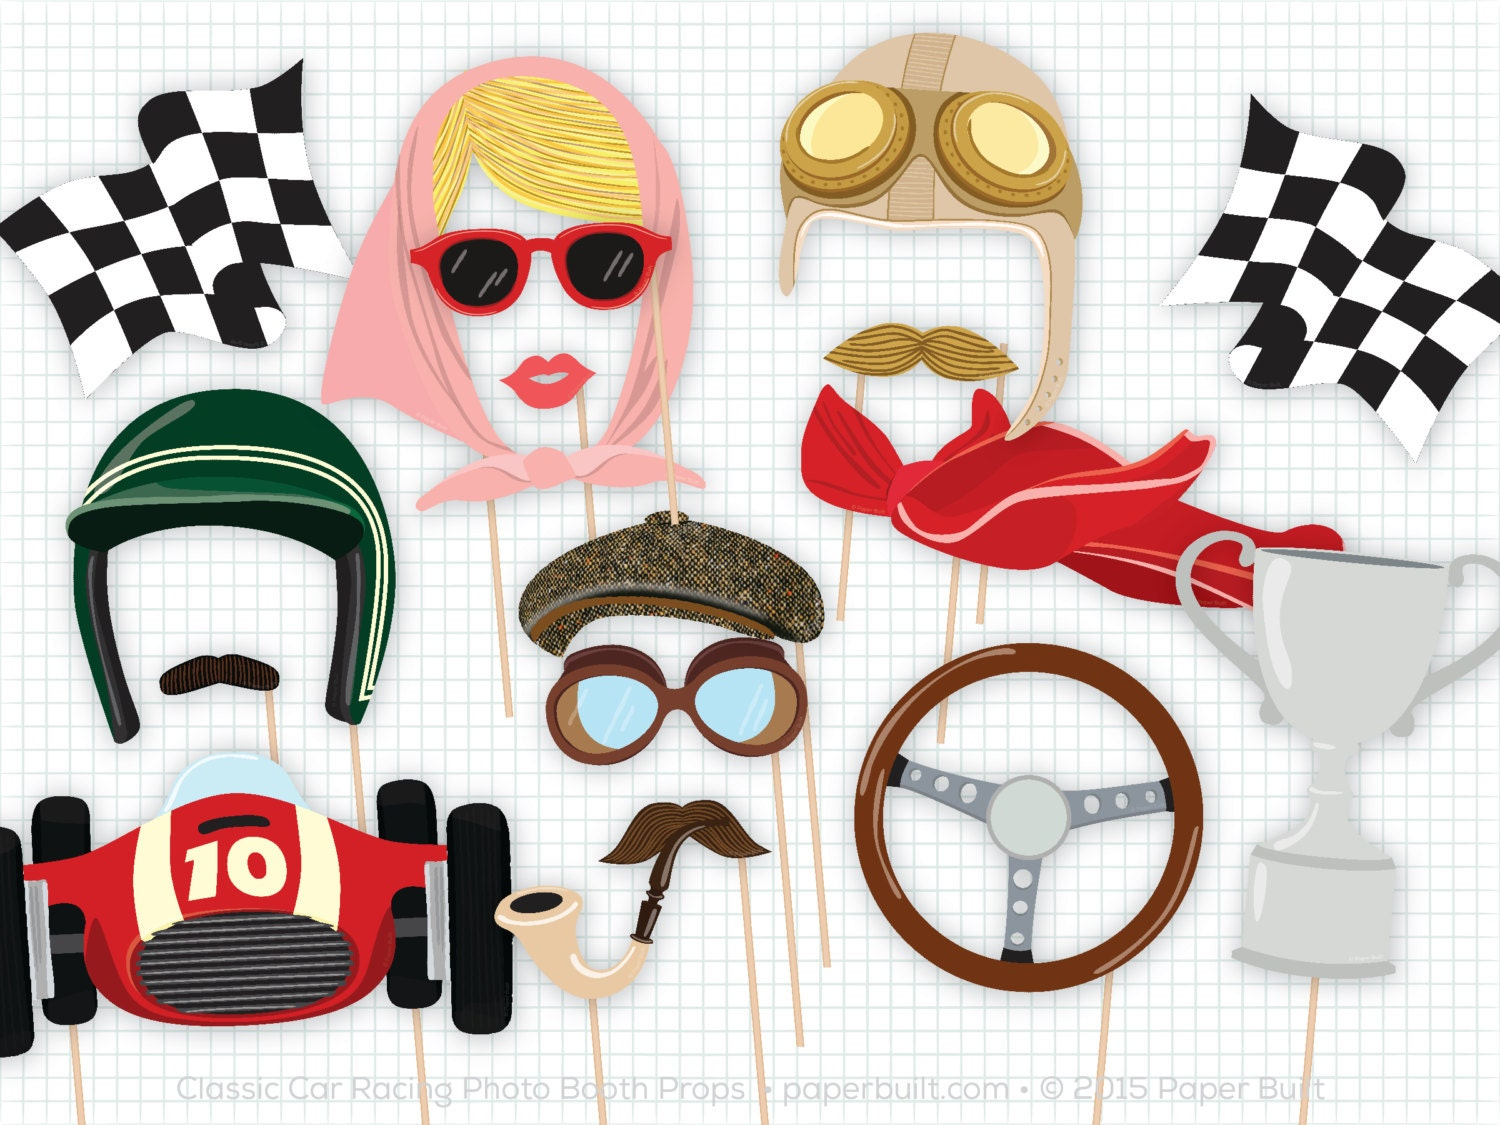 Race Car Photo Booth Props Photobooth Props Classic Car